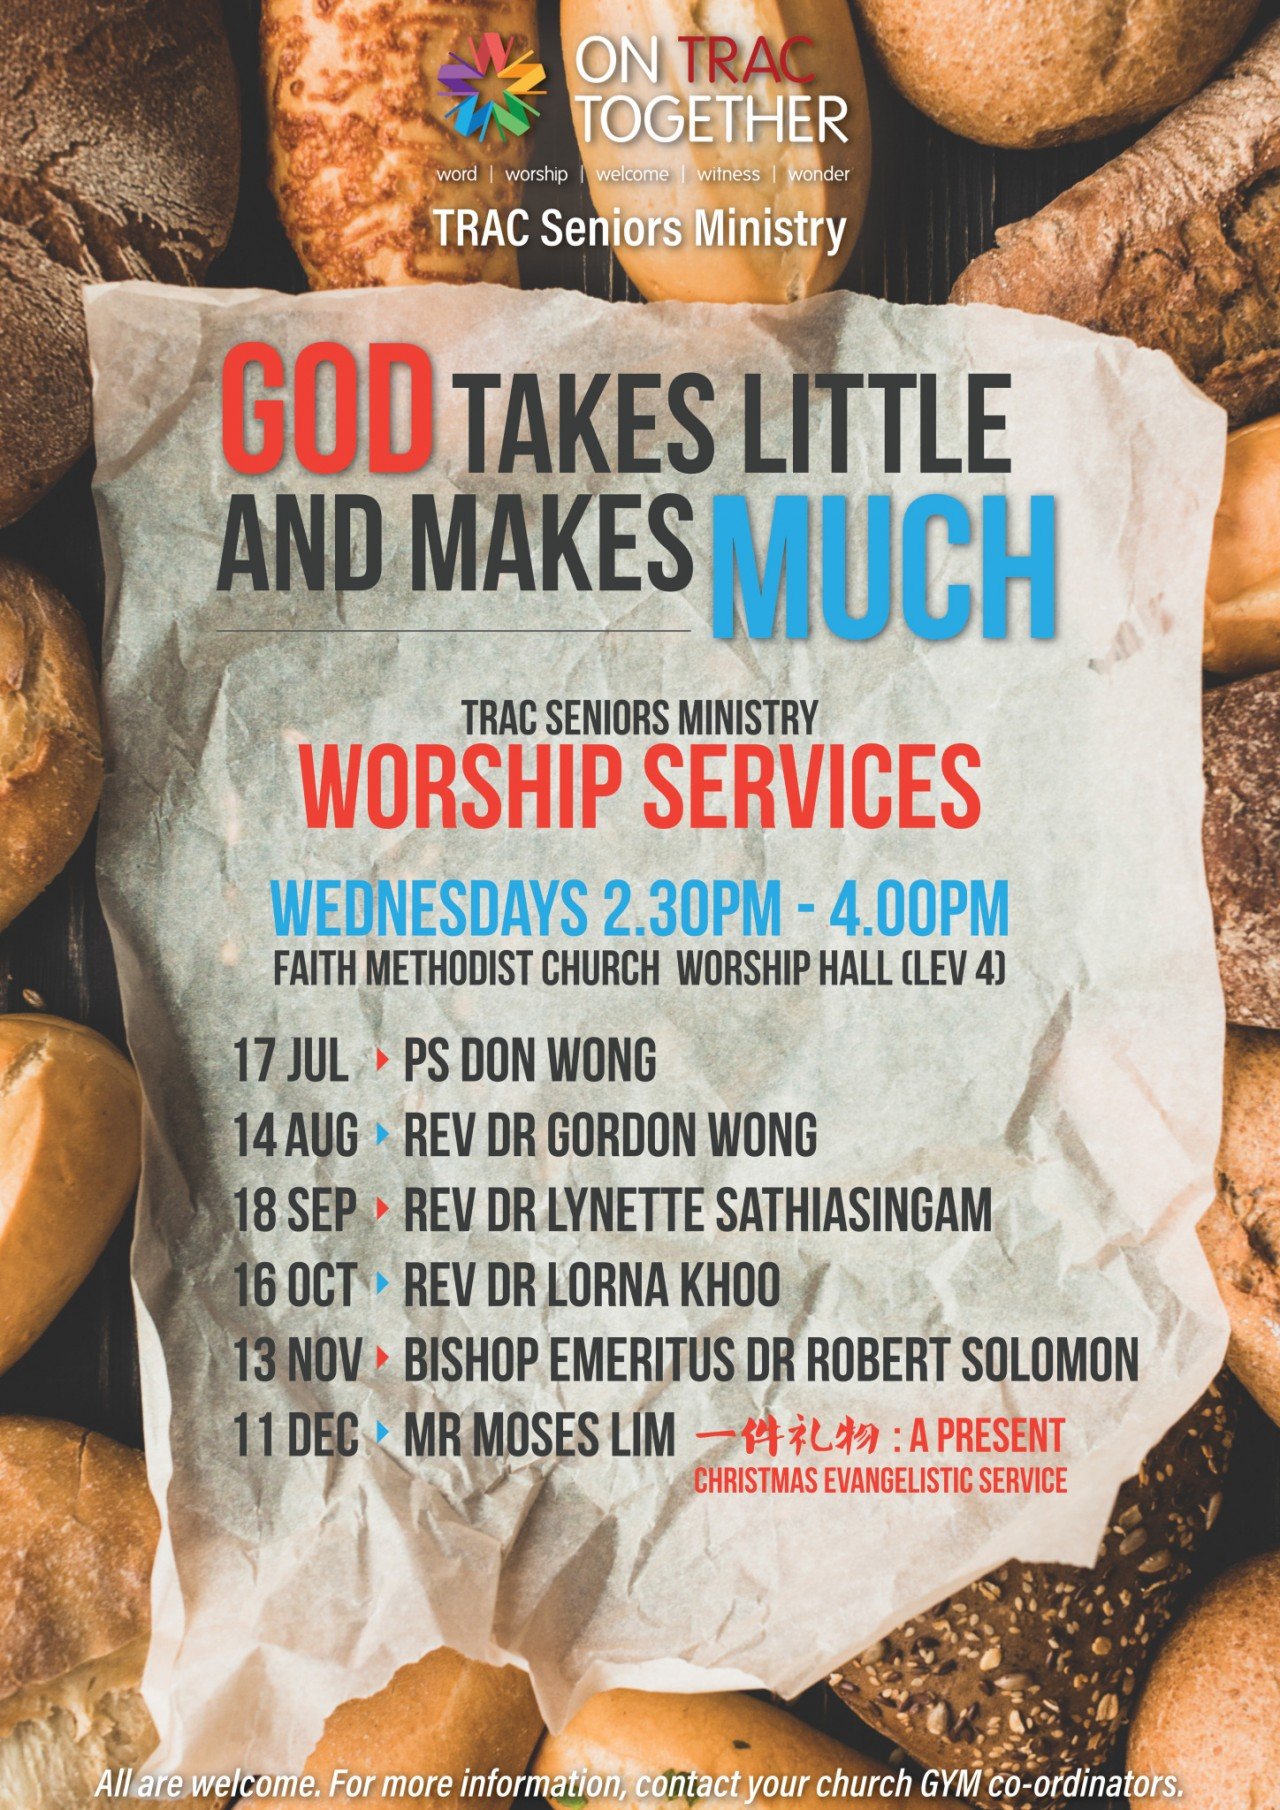 God Takes Little and Makes Much (TRAC Seniors Ministry)